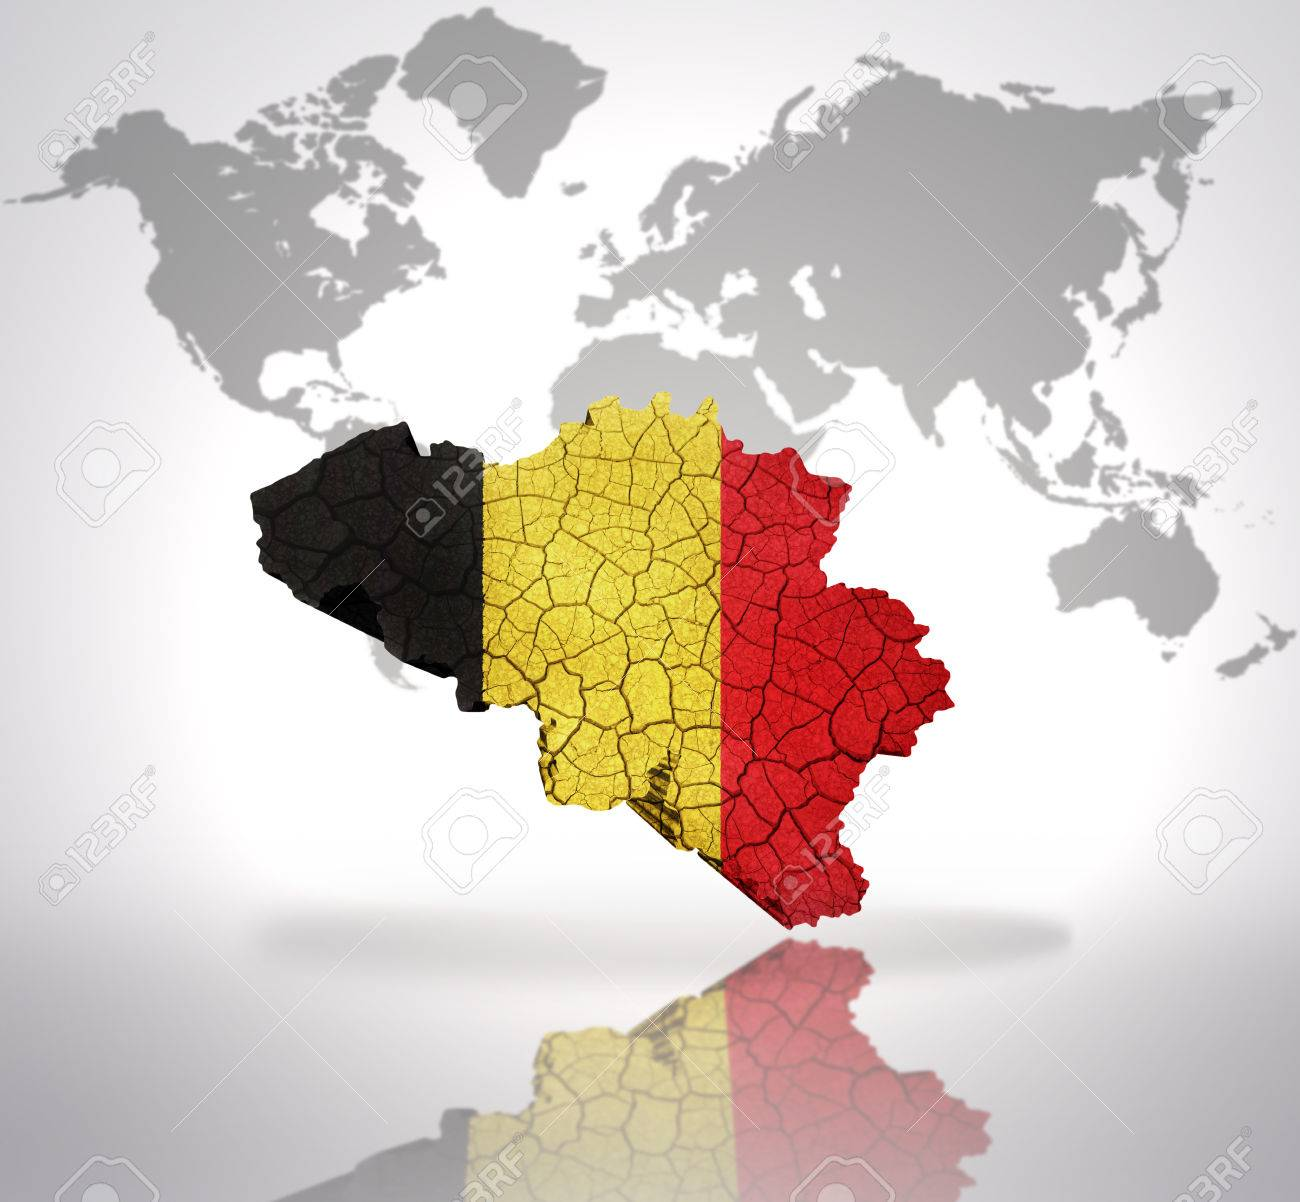 Map of belgium with belgian flag on a world map background stock map of belgium with belgian flag on a world map background stock photo 32714957 gumiabroncs Images